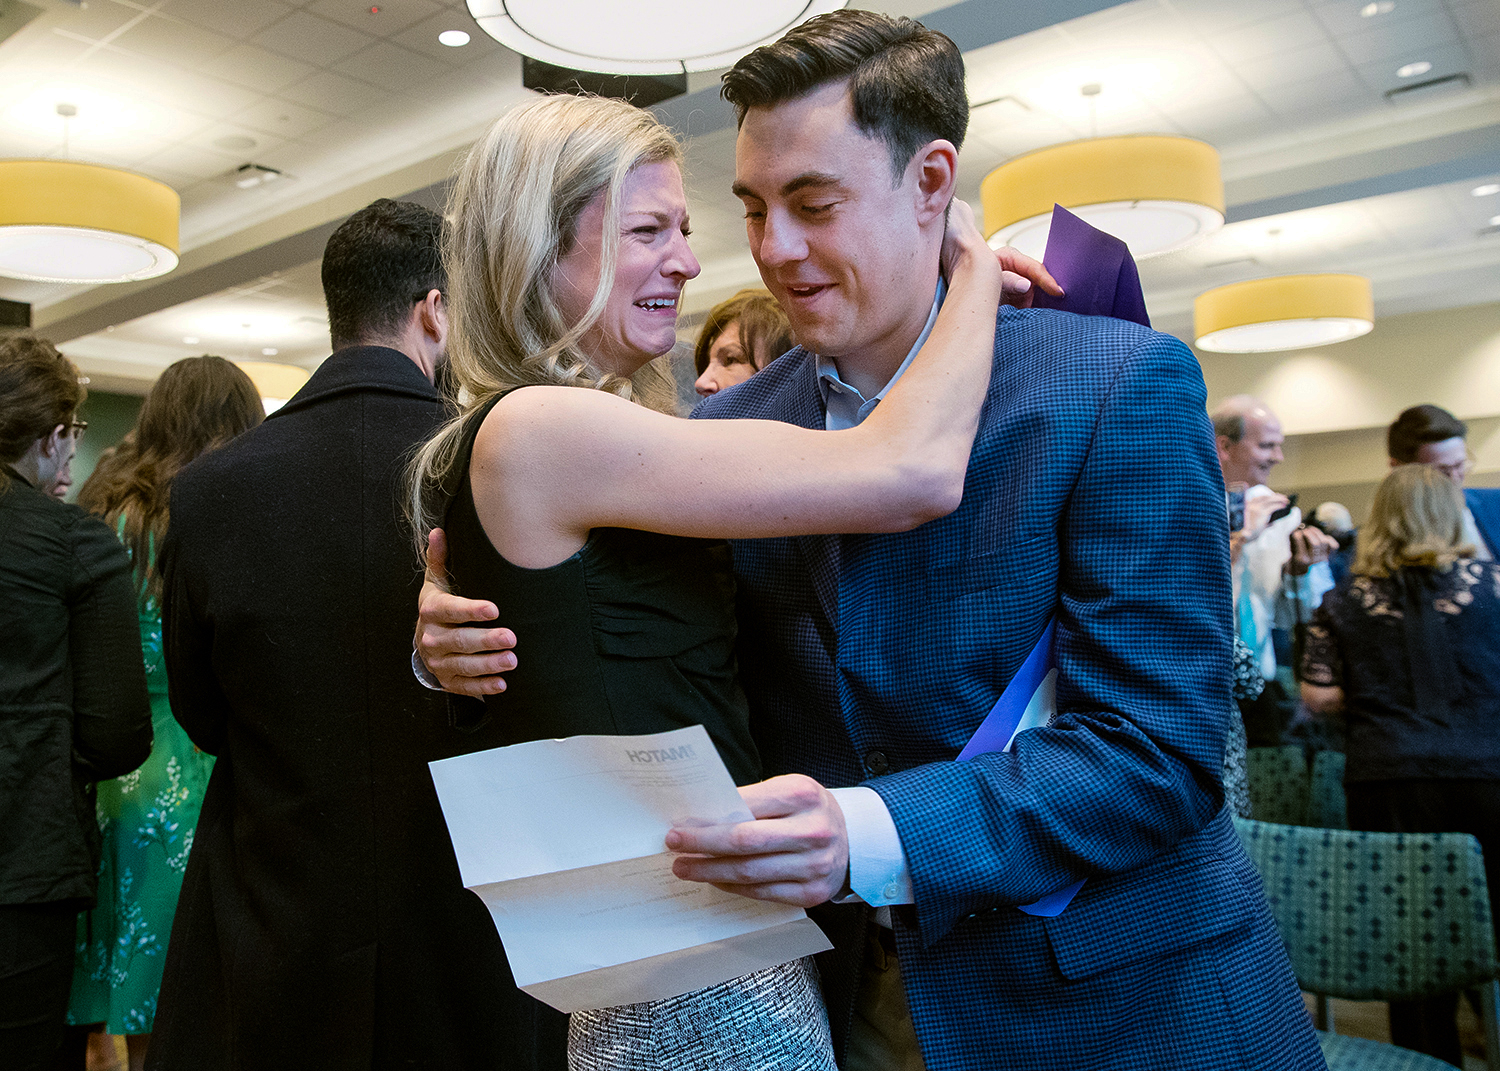 Springfield native Madelyn Fetter hugs her fiance Sean O'Malley after they learn they've been matched to Southern Illinois University School of Medicine and affiliated hospitals for their medical residencies during a Match Day ceremony at the Memorial Center for Learning and Innovation Friday, March 15, 2019. Sixty-three seniors at SIU School of medicine were part of more than 20,000 students nationwide who learned the results of the 2019 National Residency Match Program at the same time. Students will begin their residency training July 1, 2019. [Ted Schurter/The State Journal-Register]